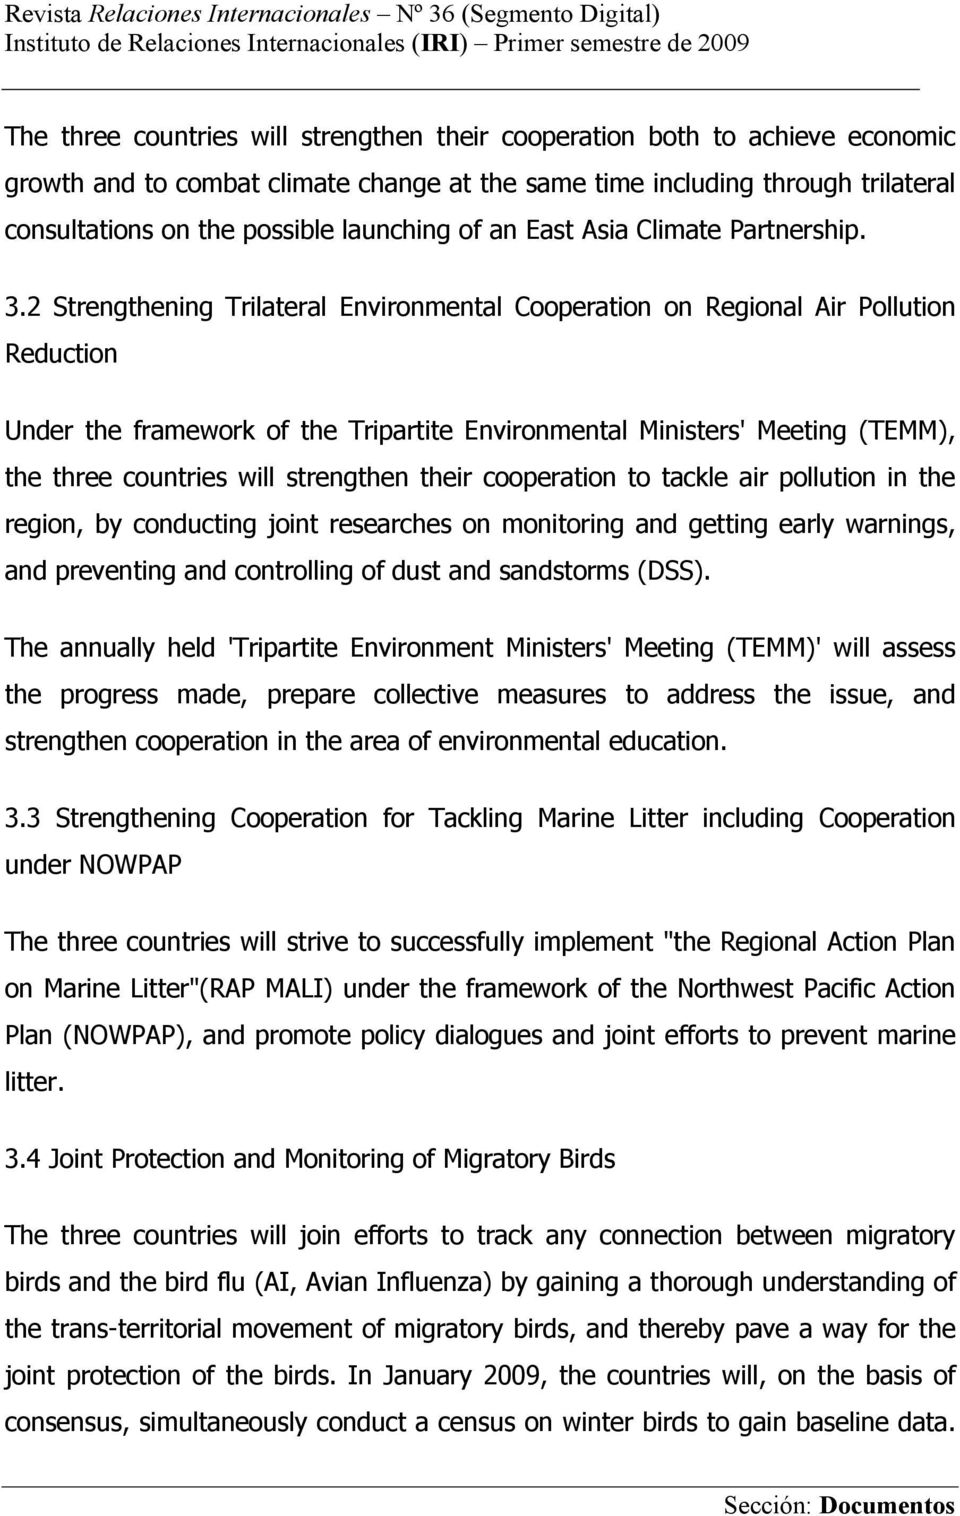 2 Strengthening Trilateral Environmental Cooperation on Regional Air Pollution Reduction Under the framework of the Tripartite Environmental Ministers' Meeting (TEMM), the three countries will